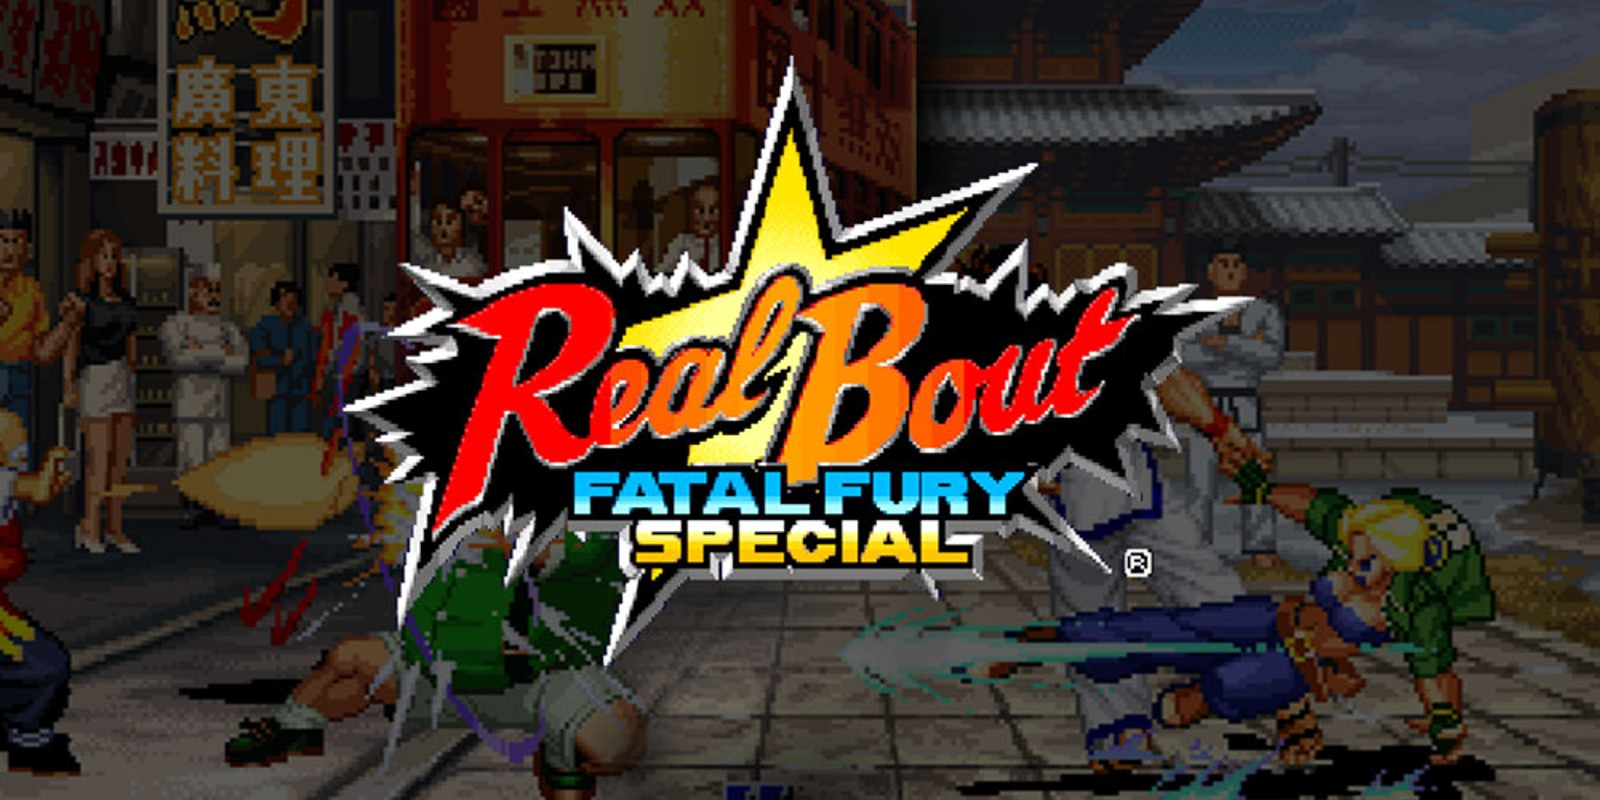 REAL BOUT FATAL FURY SPECIAL Virtual Console Wii